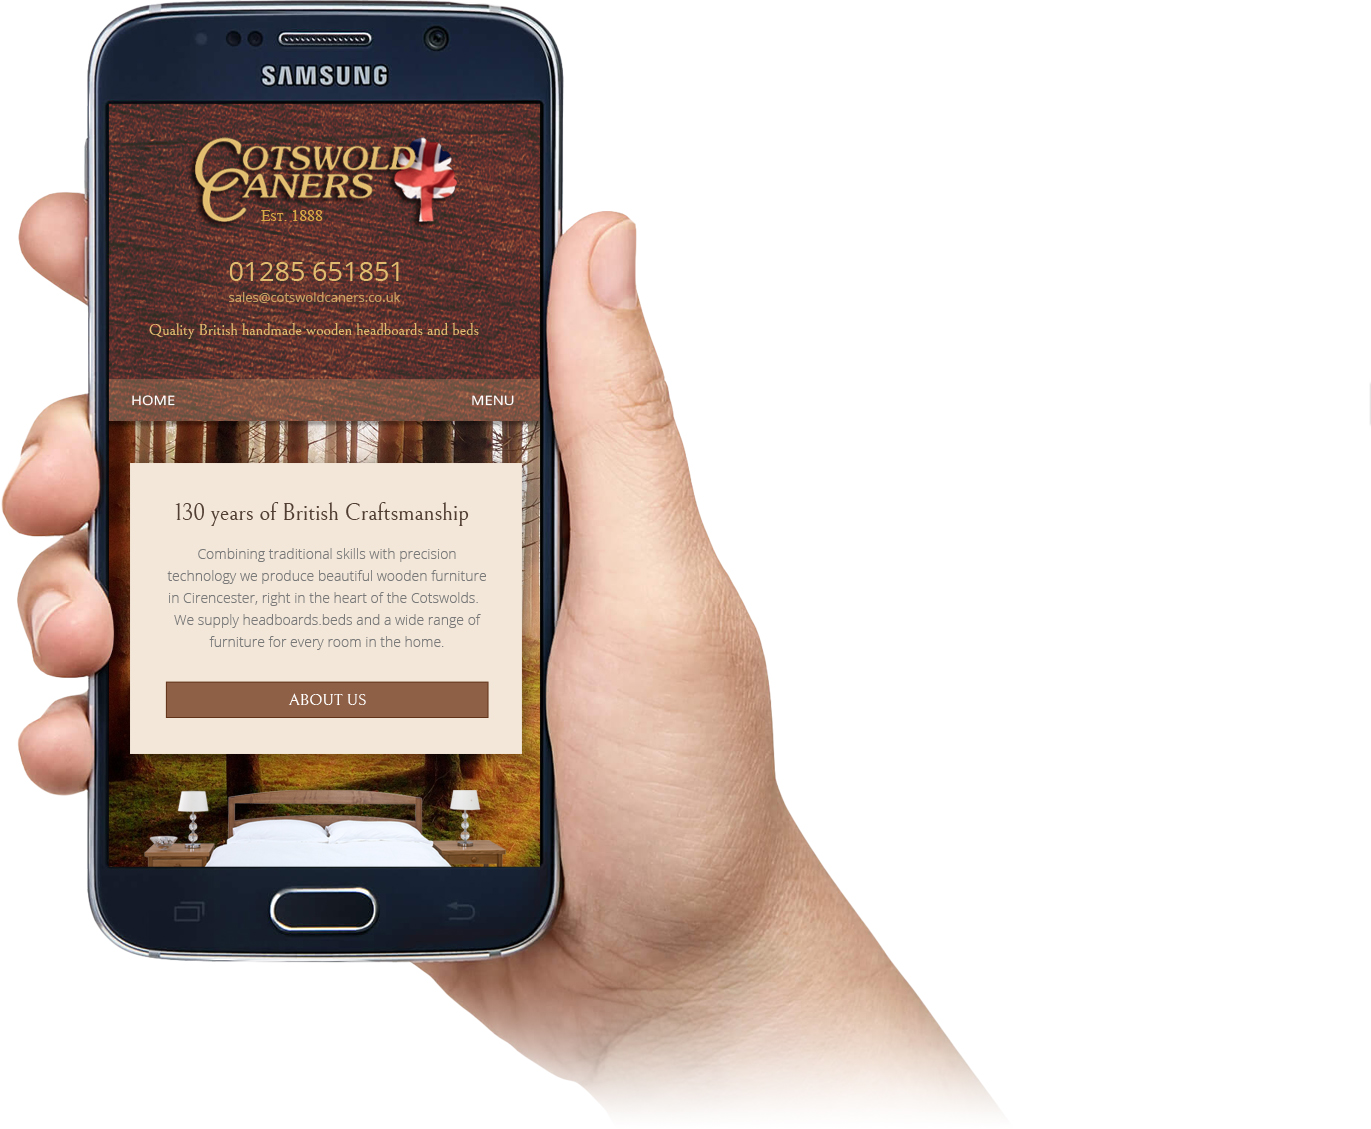 Responsive web design for Cotswold Caners